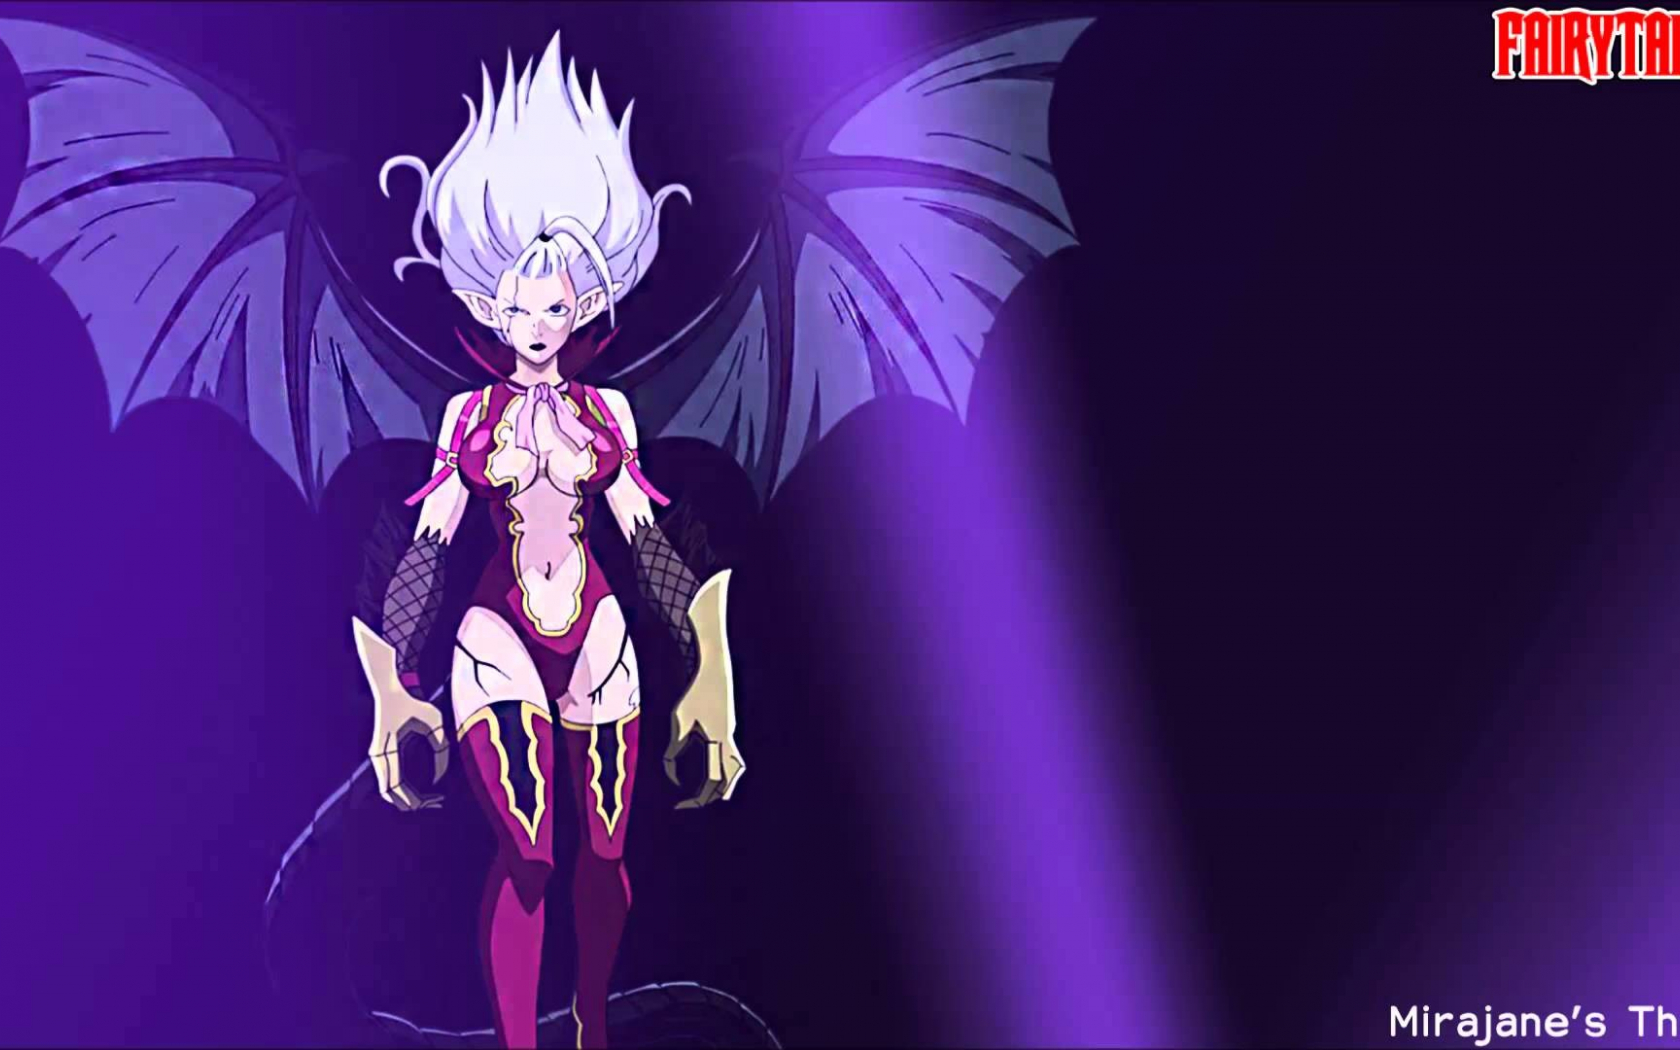 Free Download Mirajane Strauss Wallpapers 70 Images 1920x1080 For Your Desktop Mobile Tablet Explore 26 Mirajane Strauss Wallpapers Mirajane Strauss Wallpapers Search free mirajane ringtones and wallpapers on zedge and personalize your phone to suit you. mirajane strauss wallpapers